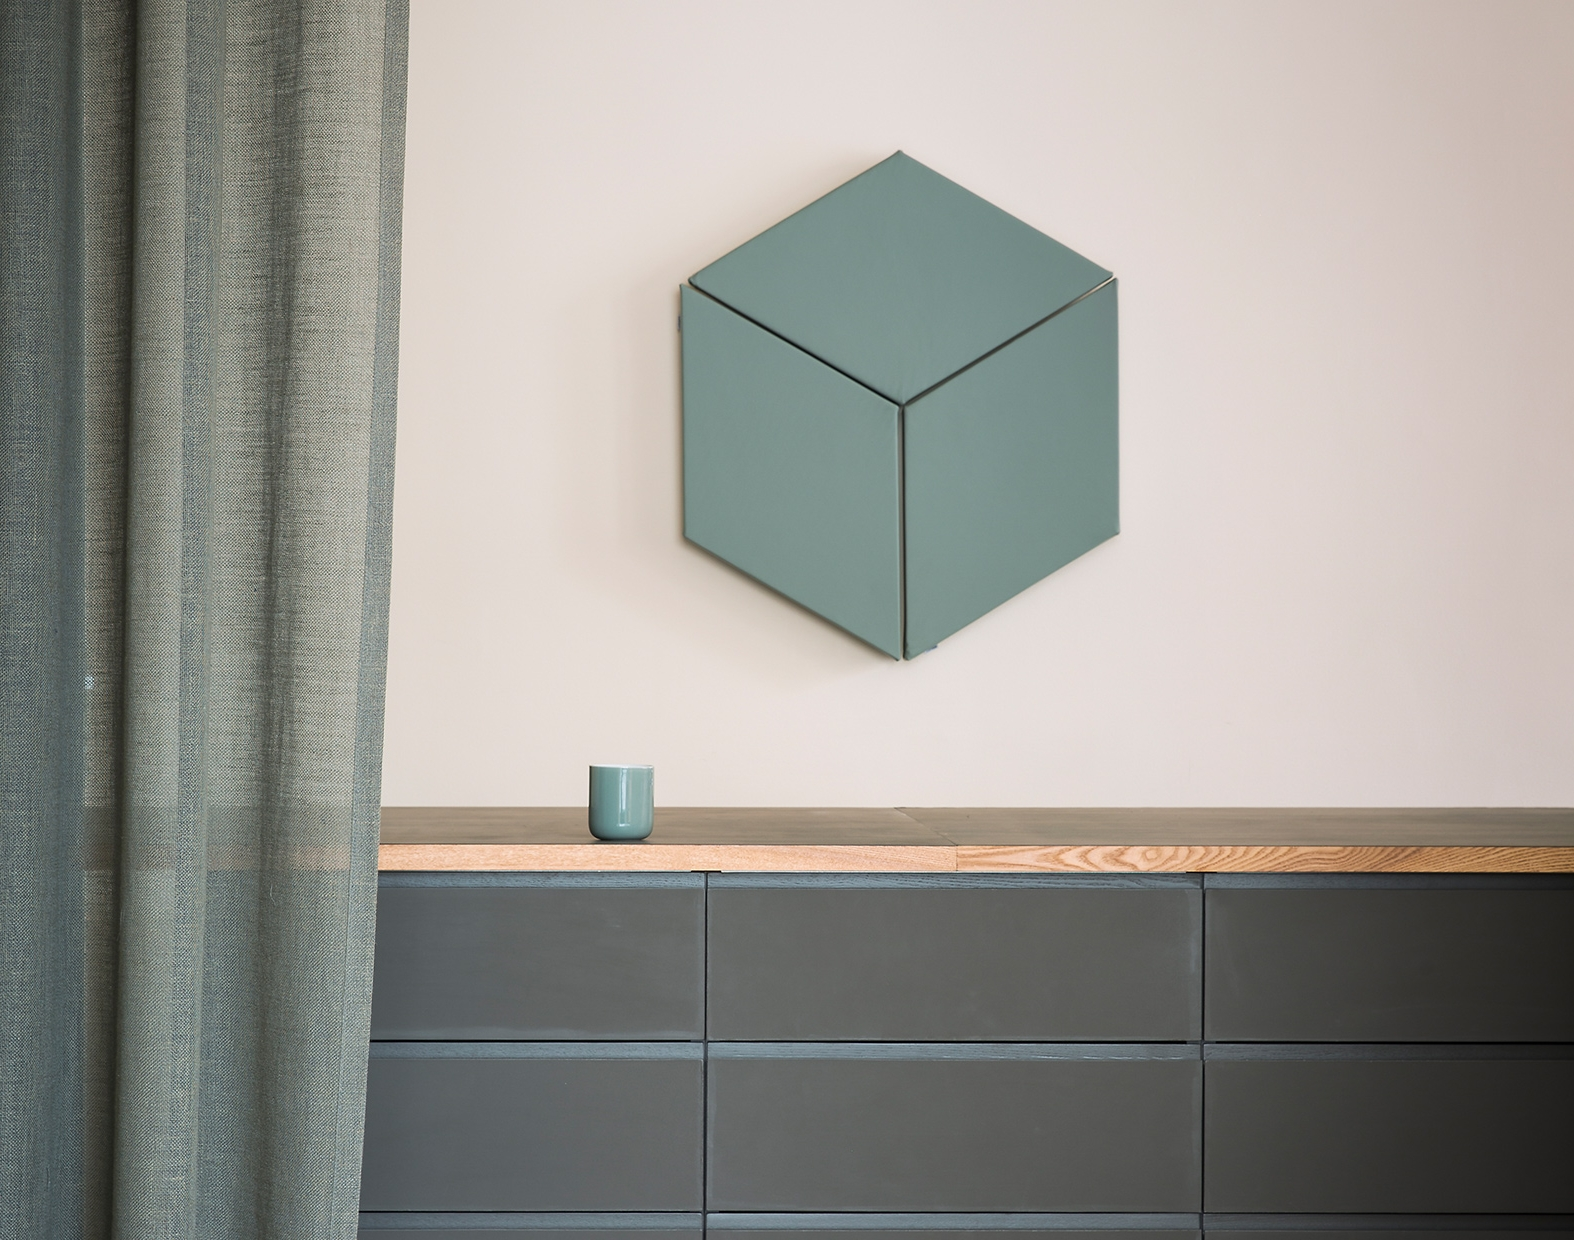 Fazett - The Fazett wall-mounted system consists of a single element, a diamond that can be combined in many ways. By using fabrics of different colour it is possible to create patterns to cover any small or large surface. The diamonds create an attractive pattern and at the same time provide effective sound absorption.